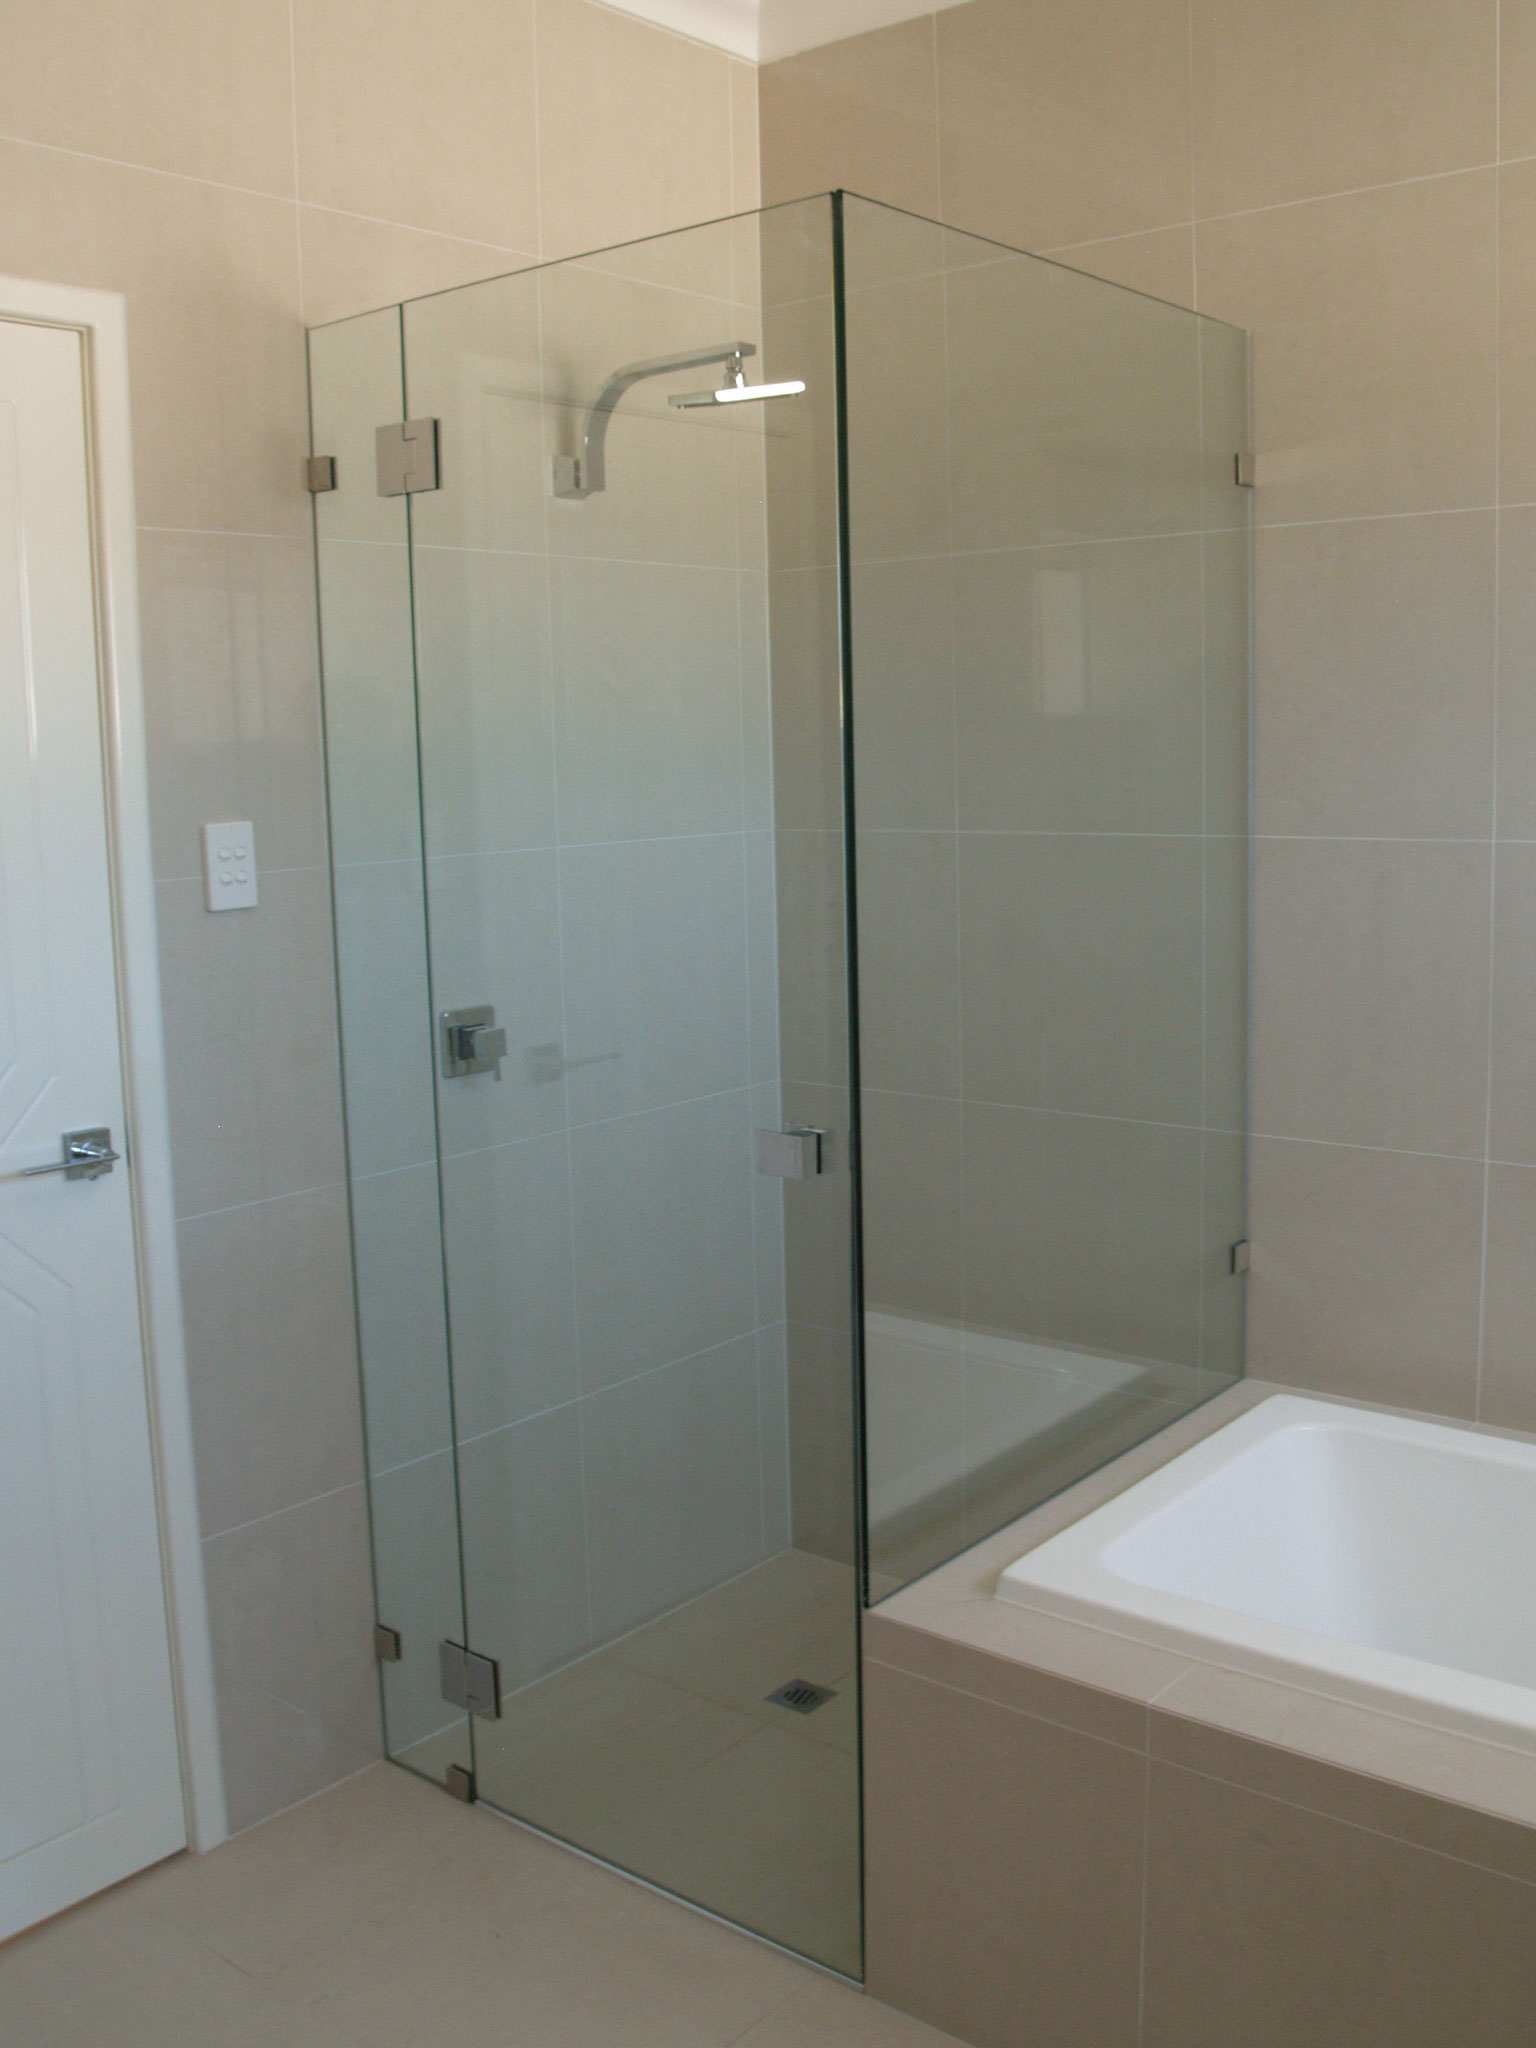 Bon Comfortable Frameless Shower Glass Panel Gallery